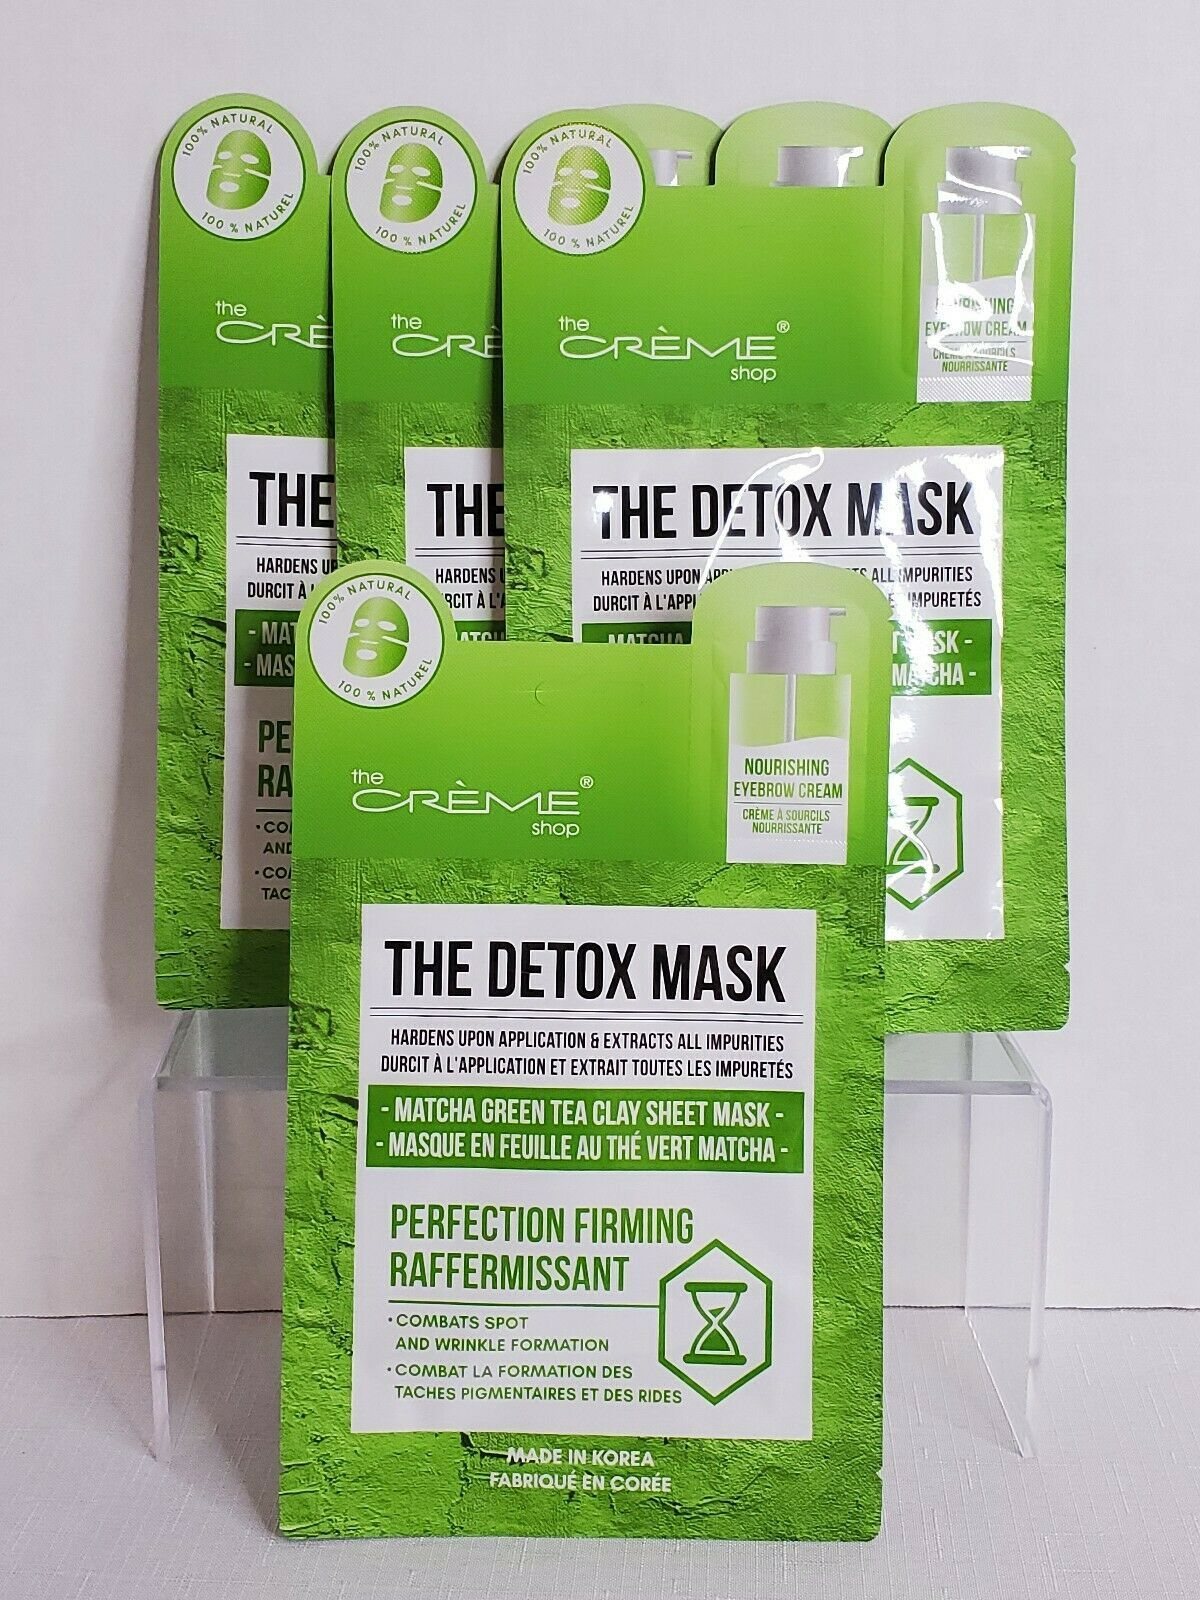 Photo of The Creme Shop Detox Face Mask Matcha Green Tea Clay Sheet Mask Skincare Firming $16.99 #GreenTeaFac